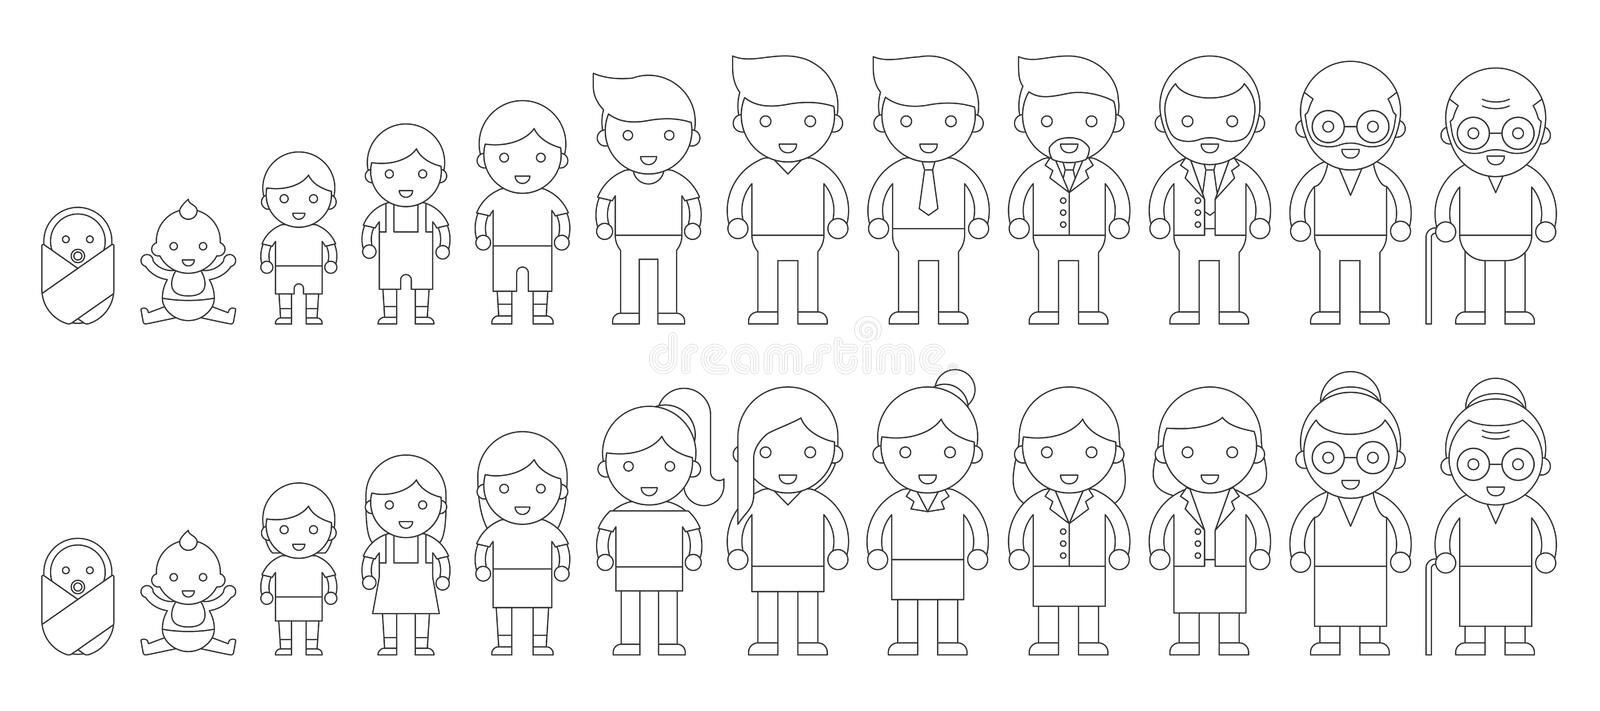 Human life cycle of male and female from newborn, children,teenage, adult, middle age and retired. Editable outline stock illustration